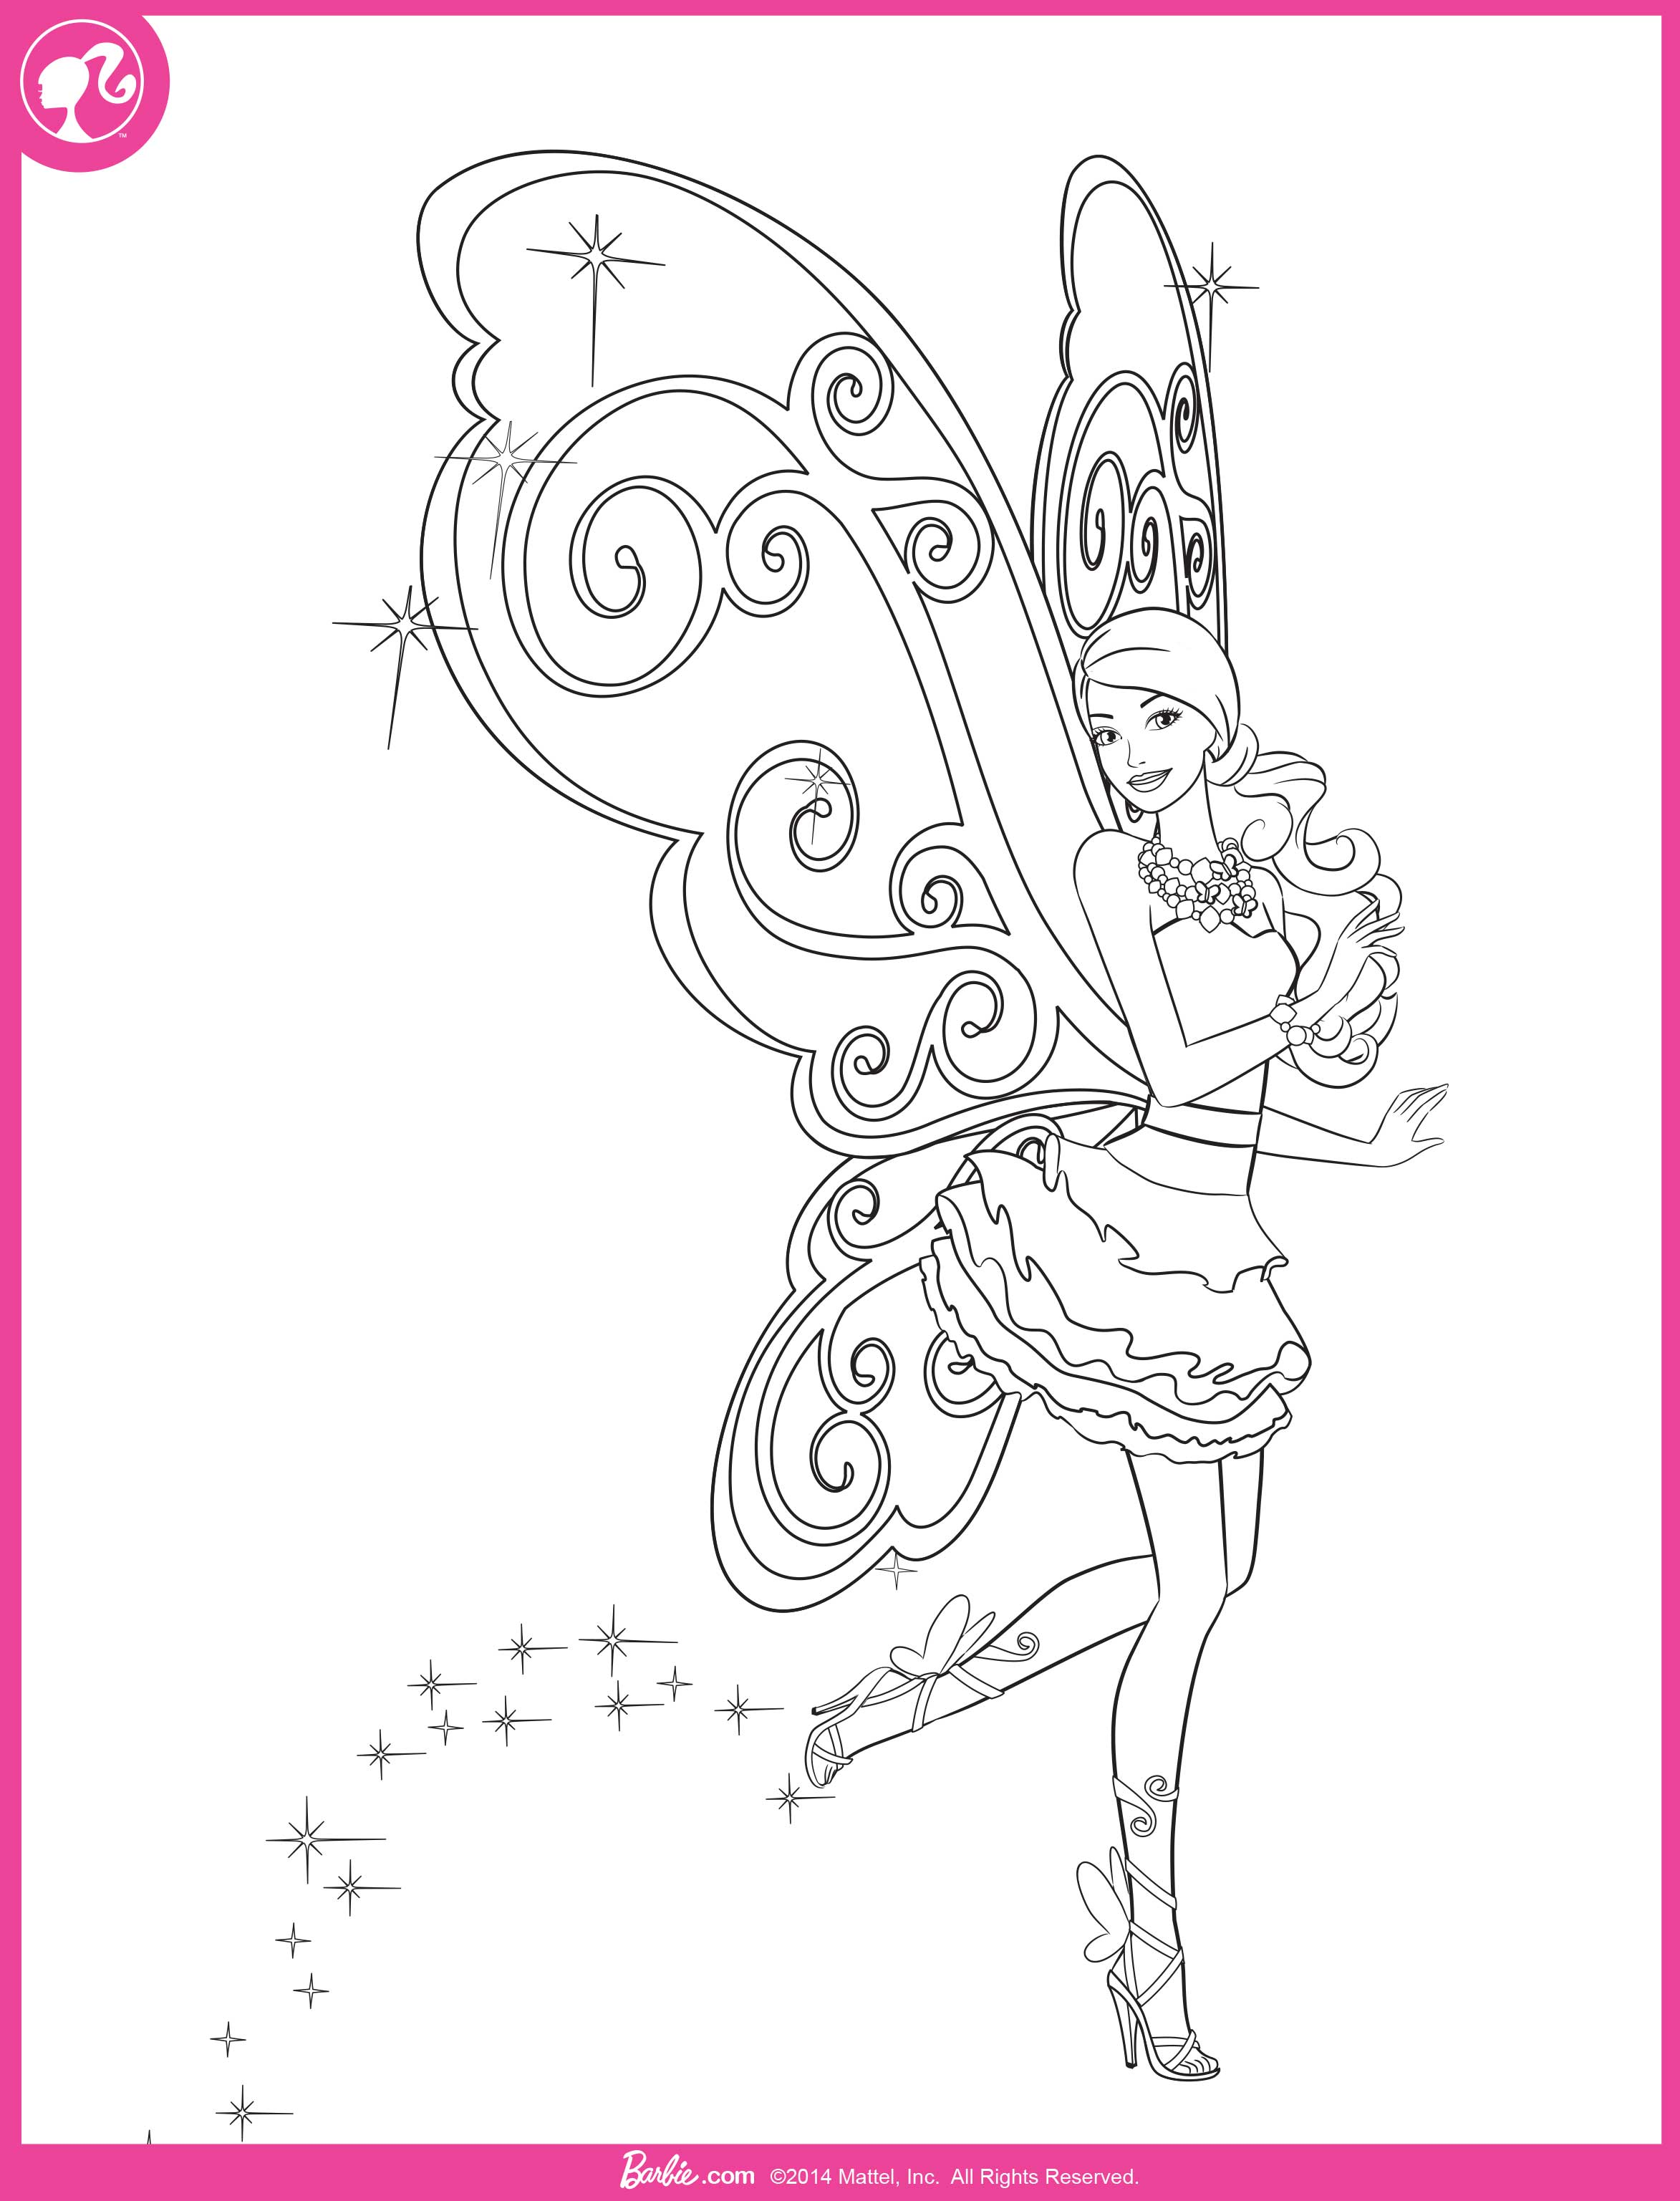 interactive toy story coloring pages - photo#37